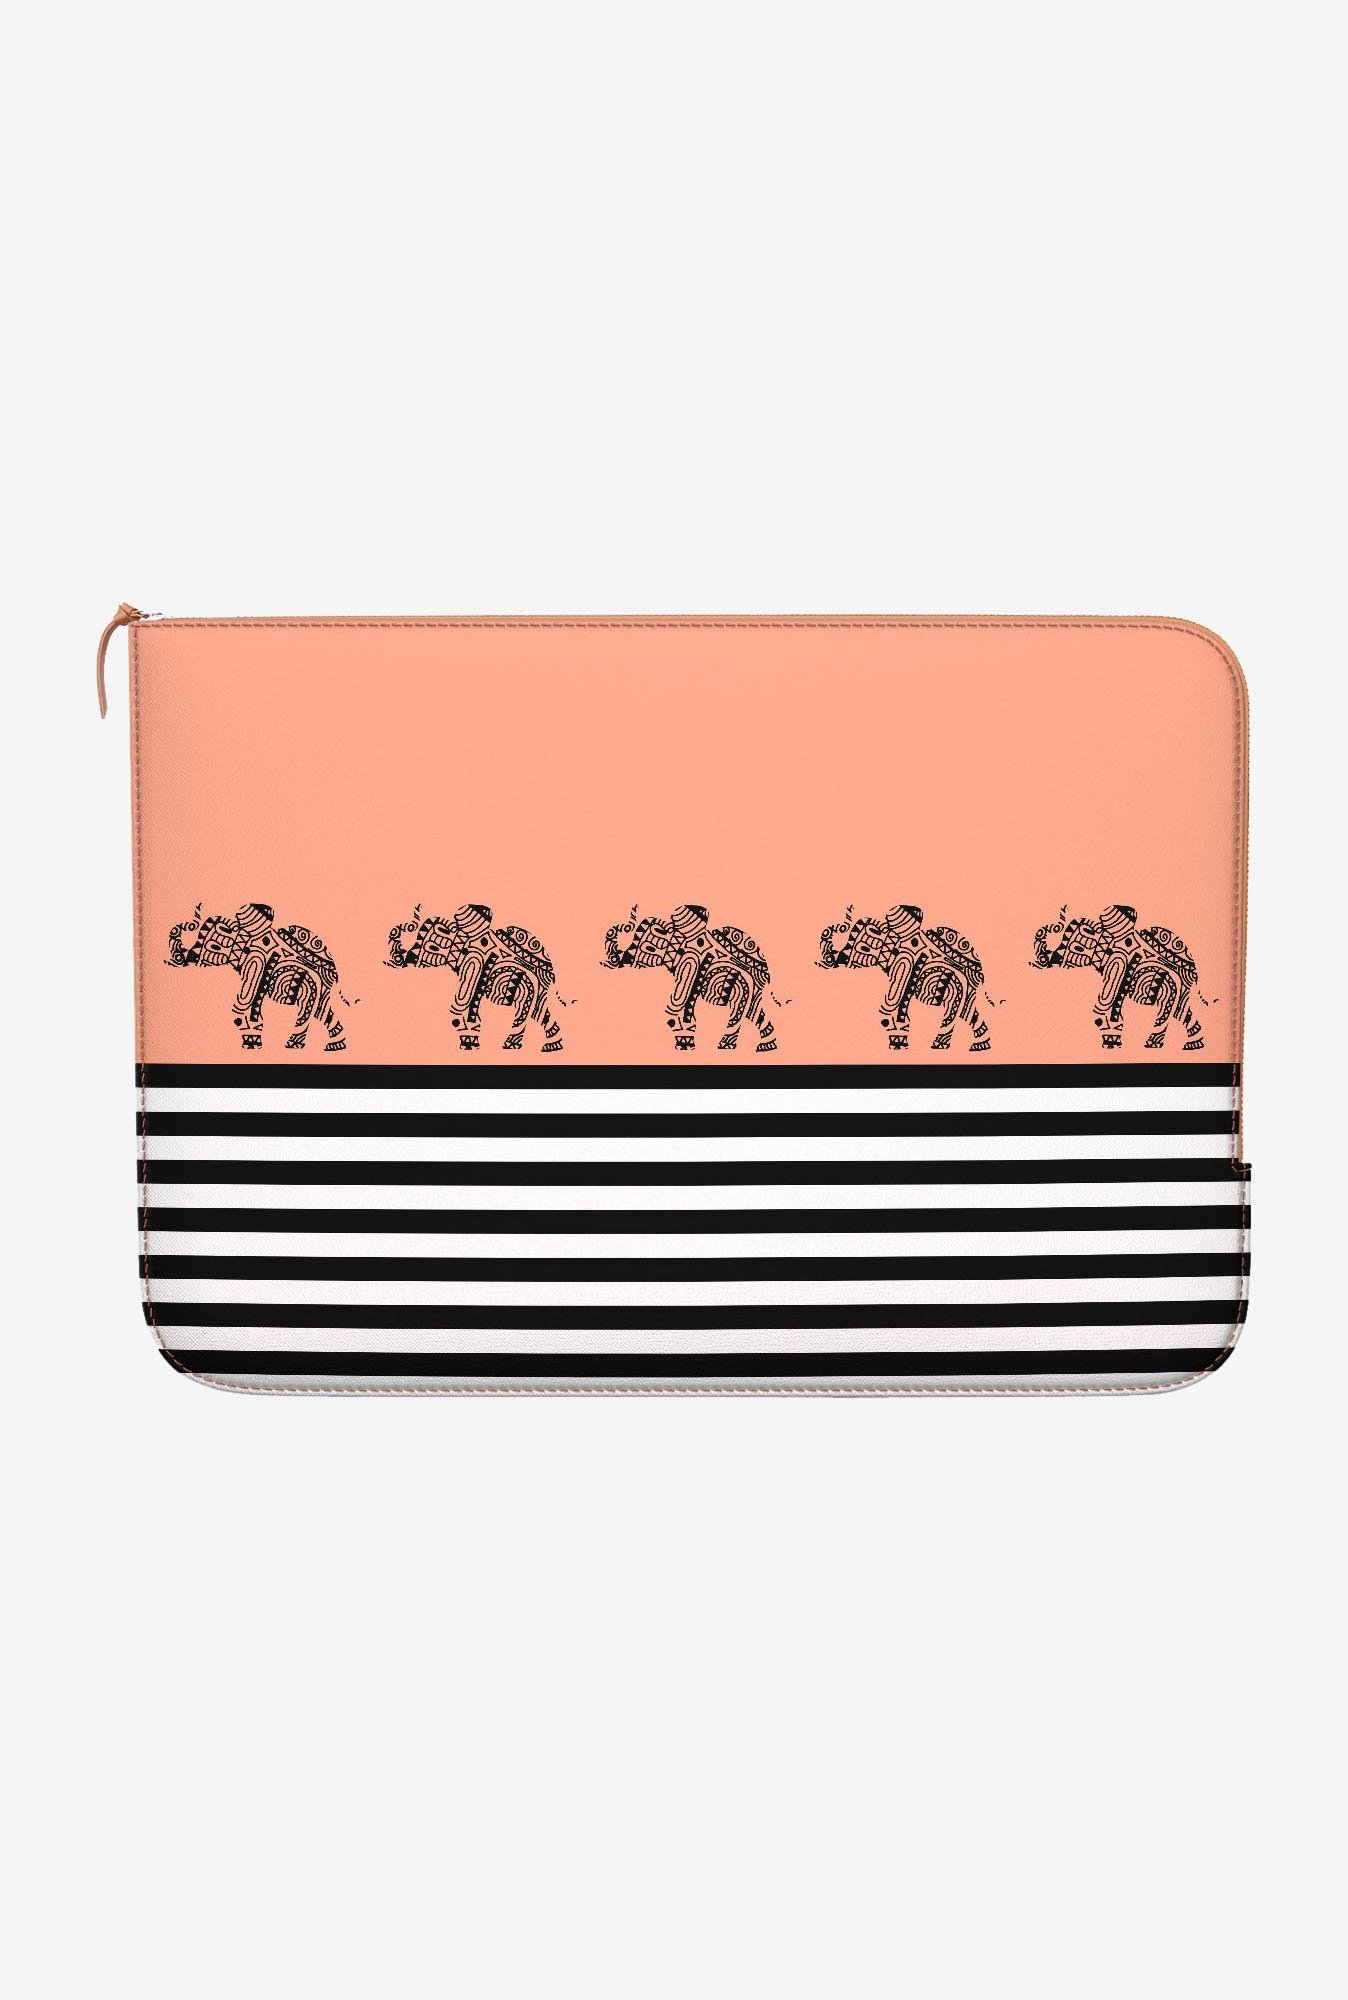 DailyObjects Stripes Coral MacBook Air 11 Zippered Sleeve